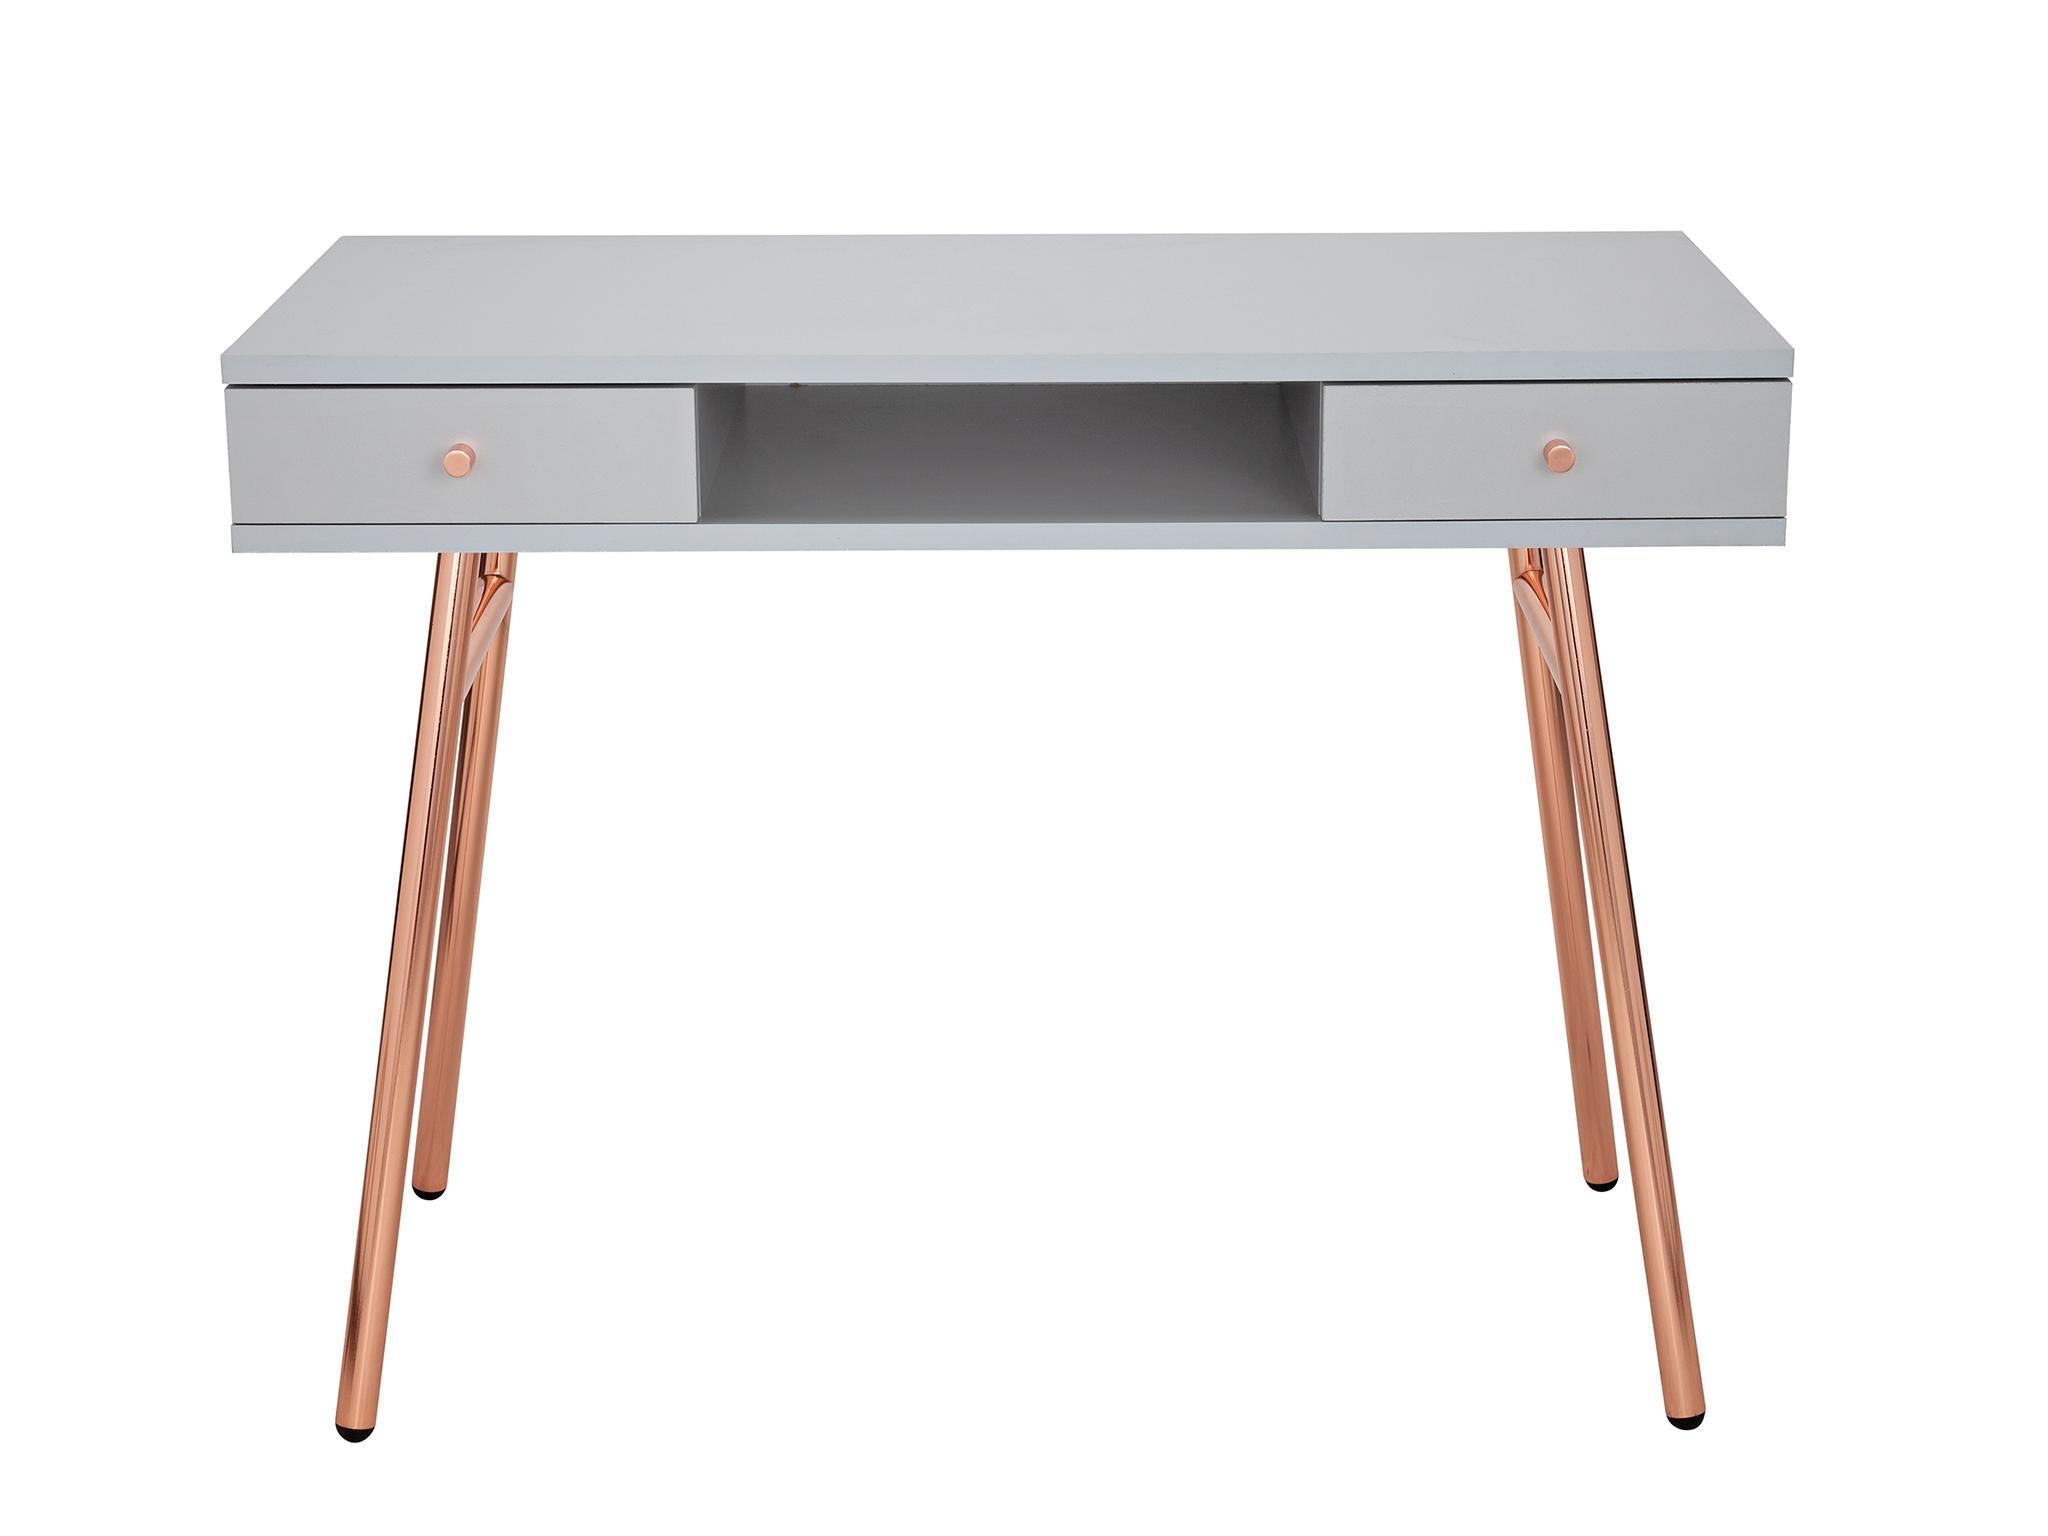 Best Desks That Are Stylish And Functional With Storage Space